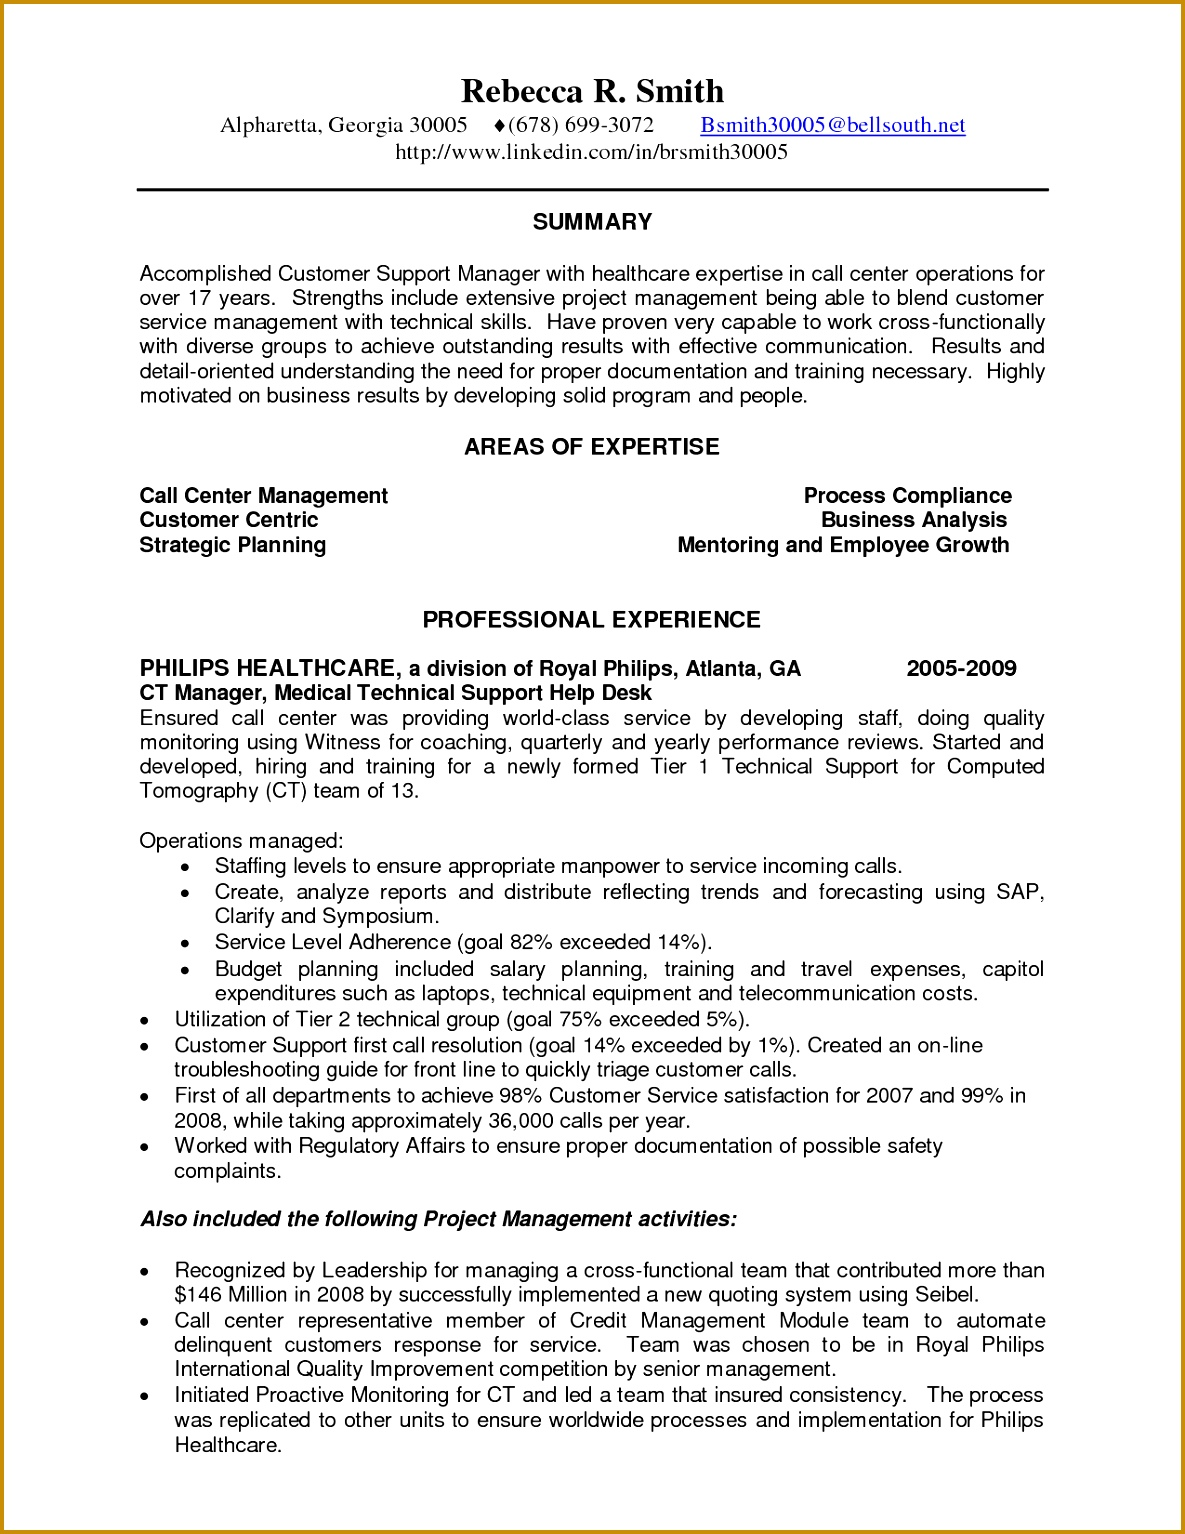 Awesome Collection of Sample Resume For Call Center Representative Form 15341185